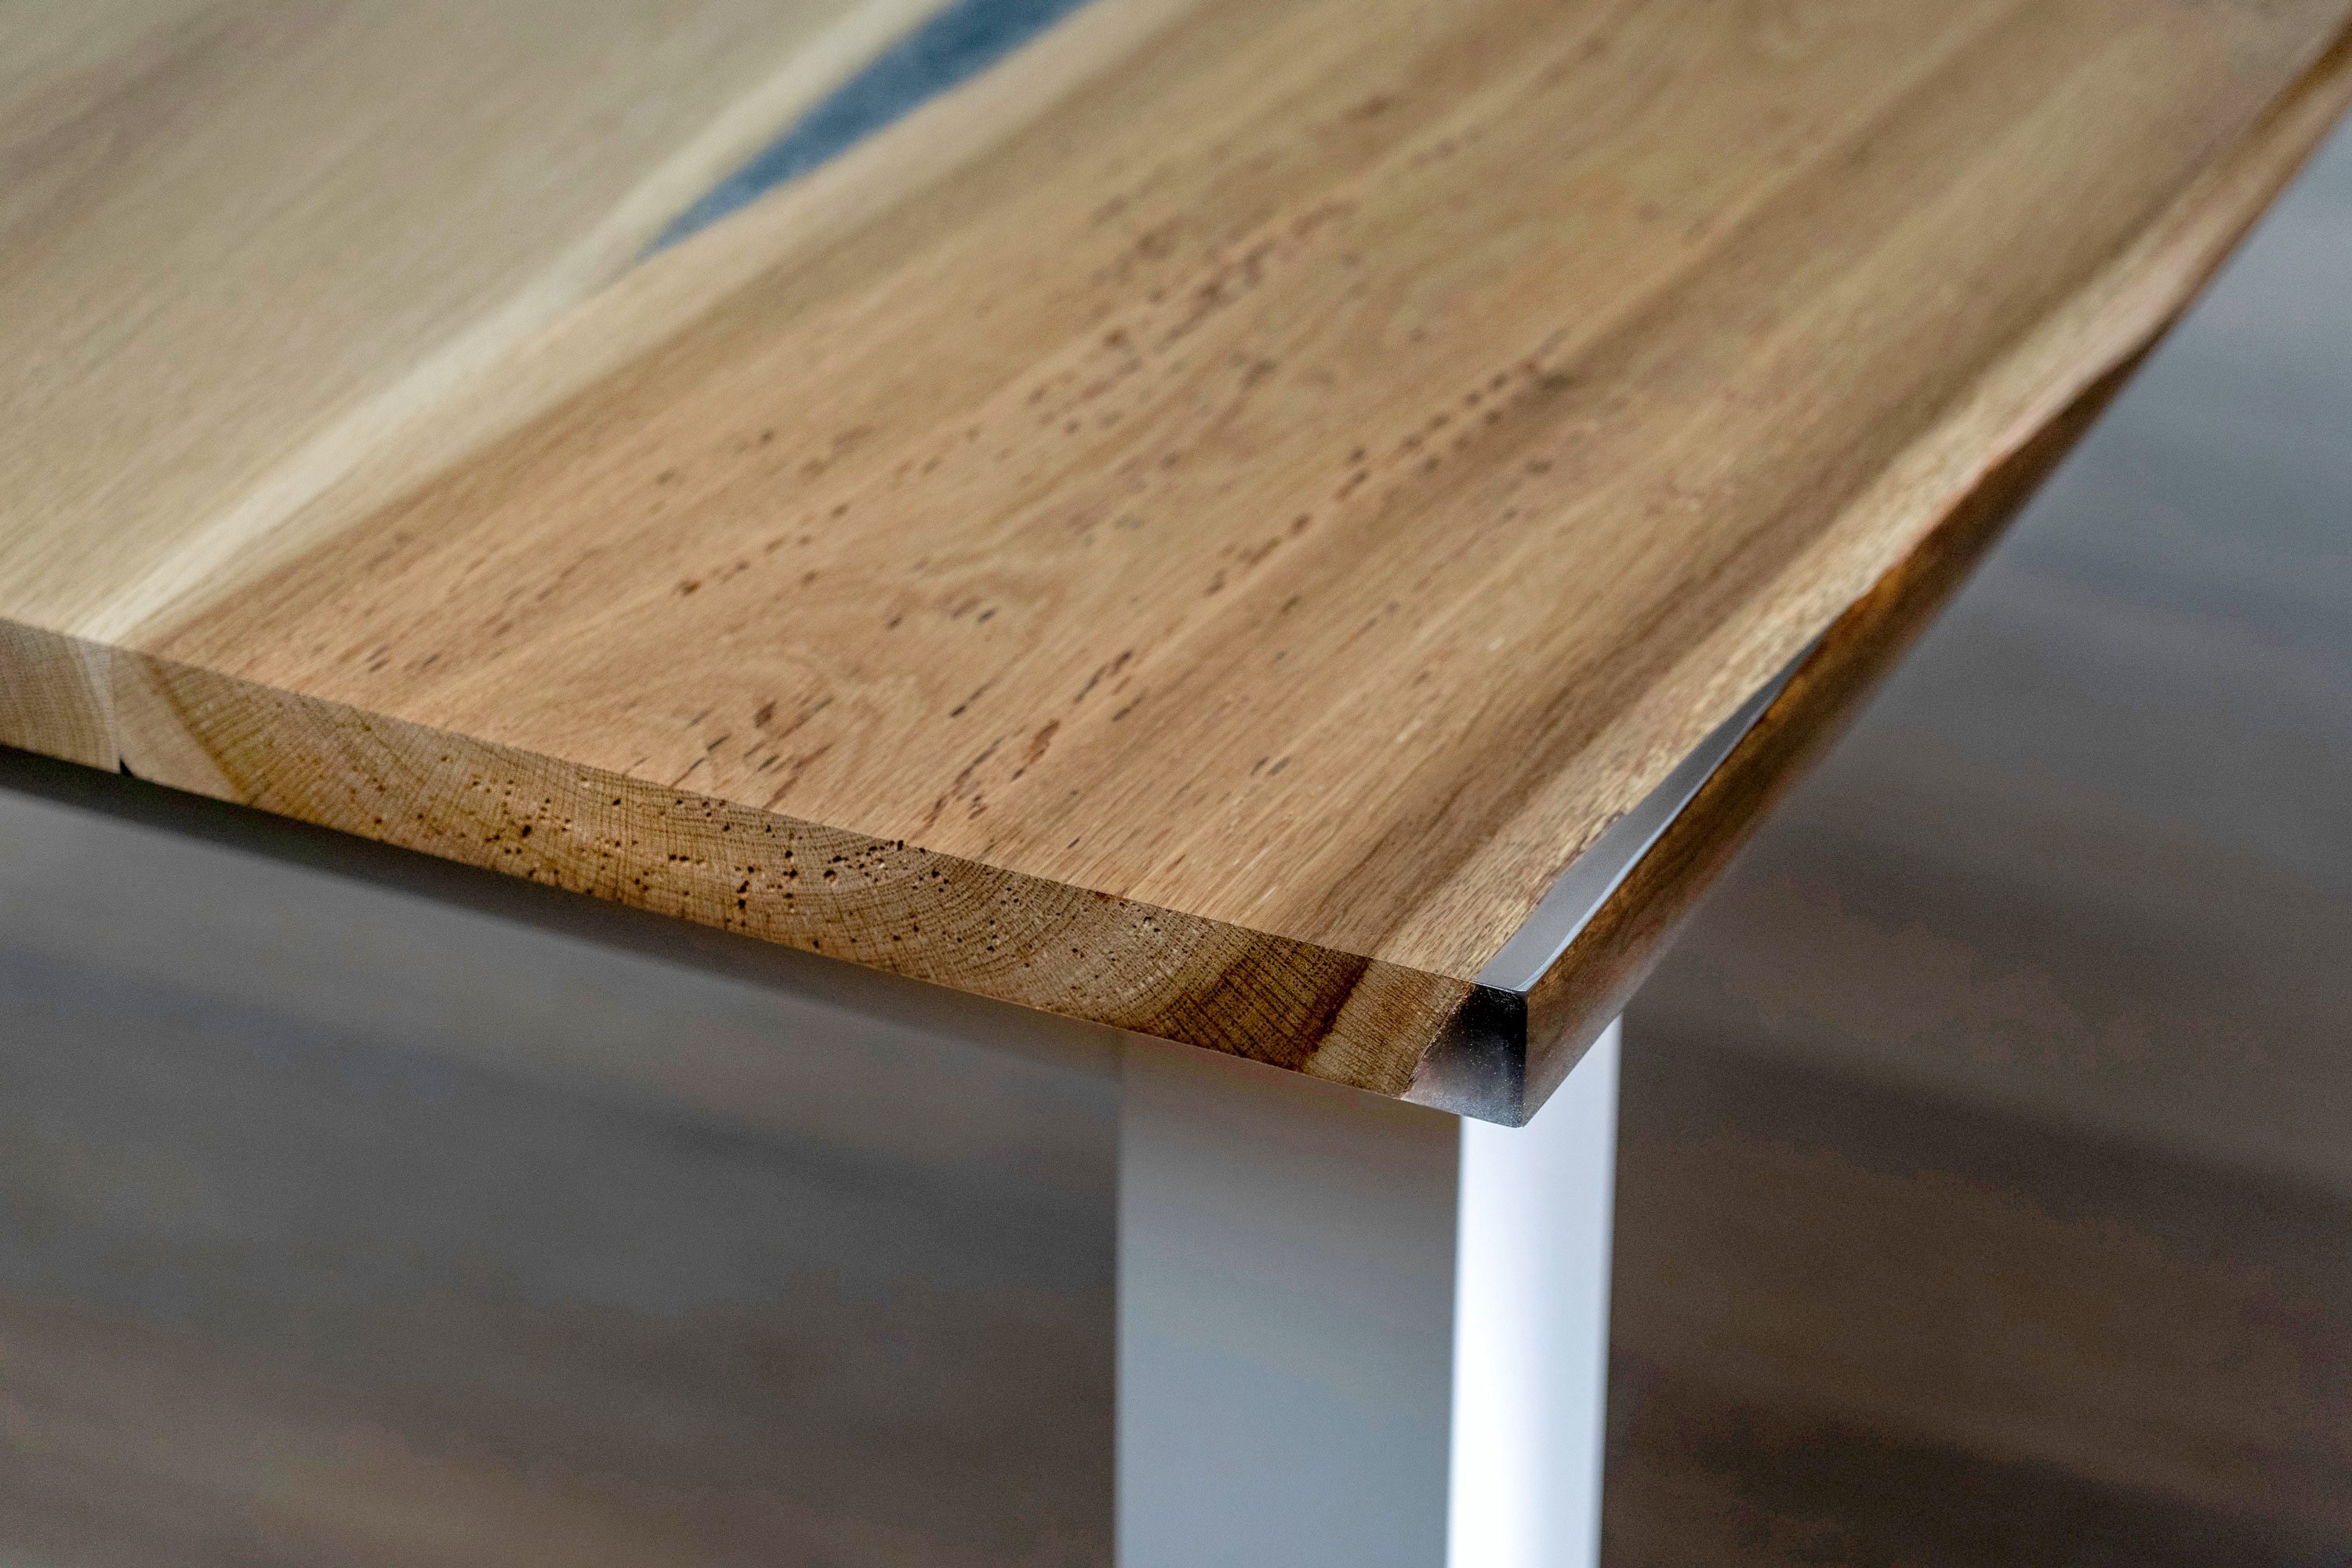 Marketing Photography of a bespoke table created by artisan furniture makers Earthy Timber in East S